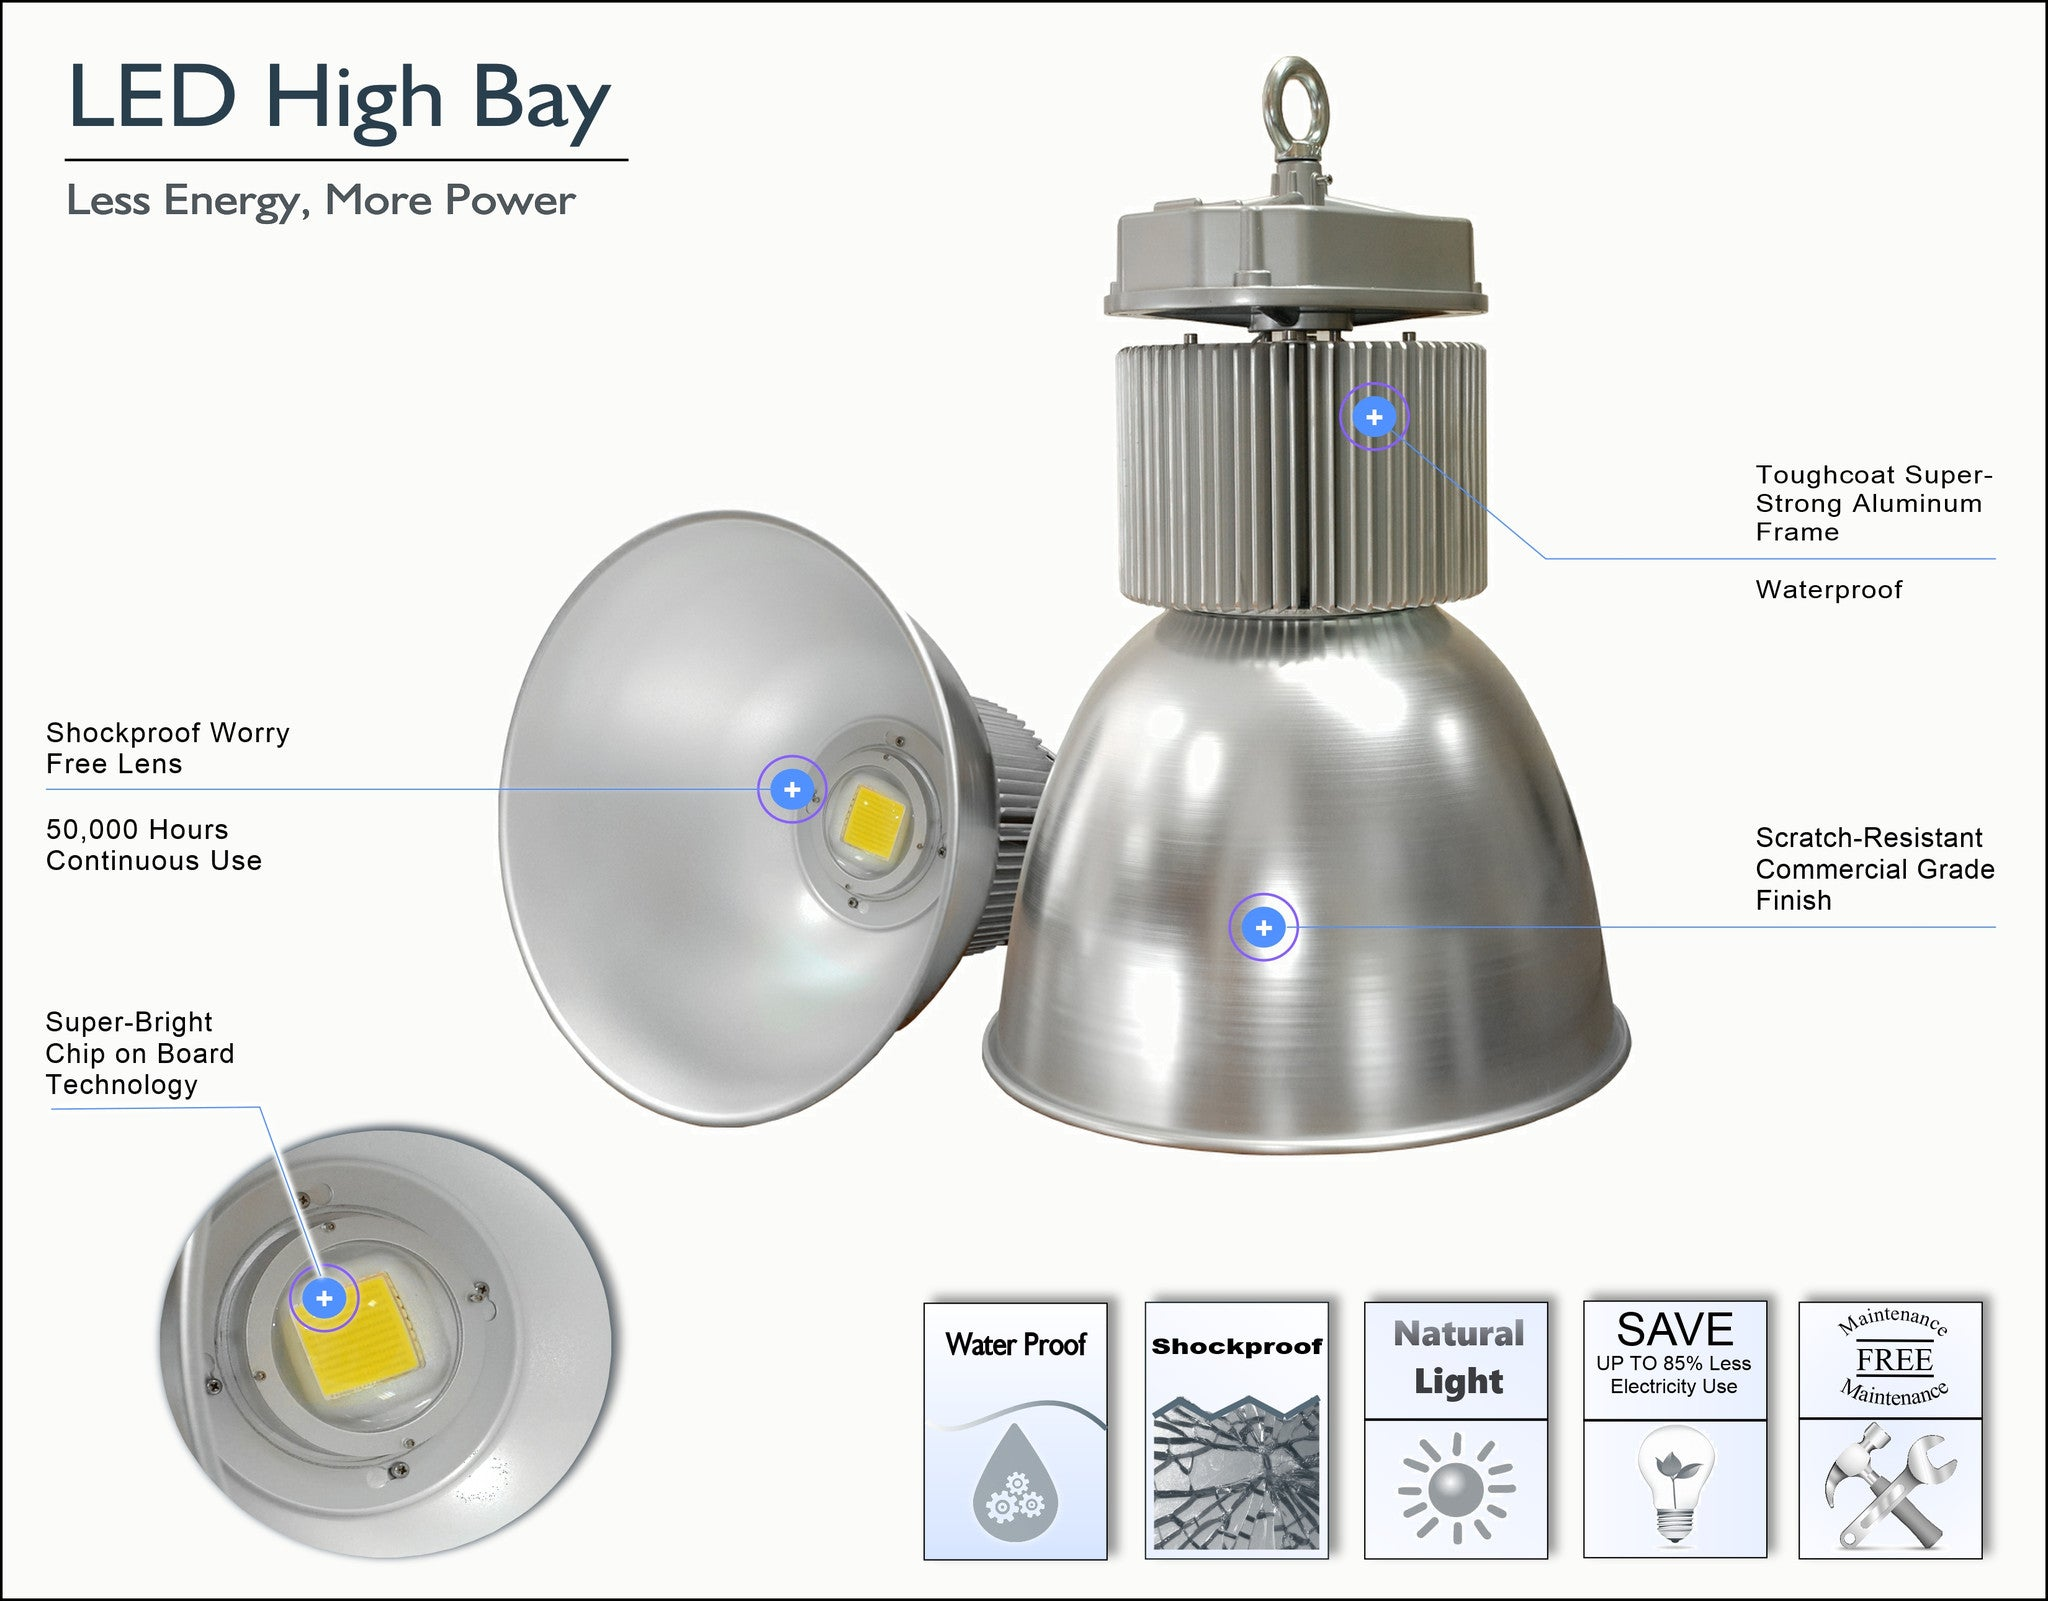 hook product lighting factory shenzhen led light bay detail bracket ufo mount pendant high